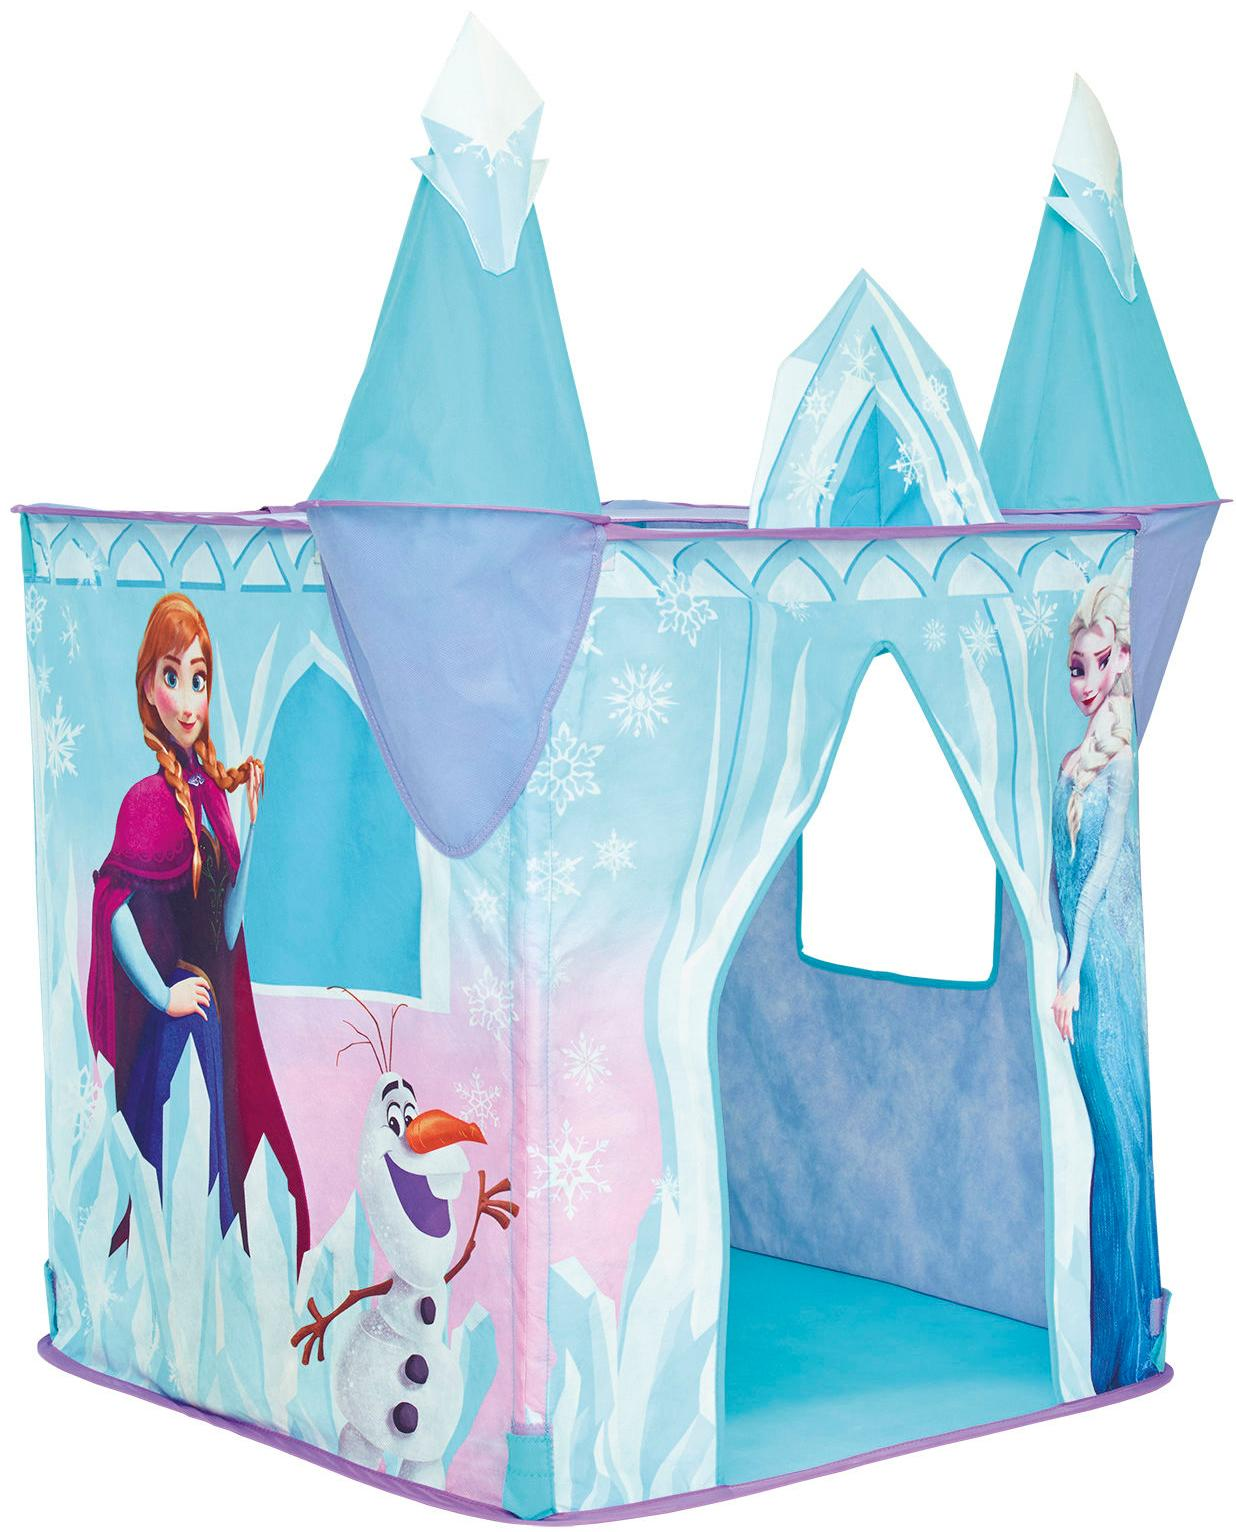 Kids Children Girls Indoor Outdoor Garden Pop Up Play Tent House Frozen Castle  sc 1 st  eBay & Kids Children Girls Indoor Outdoor Garden Pop Up Play Tent House ...